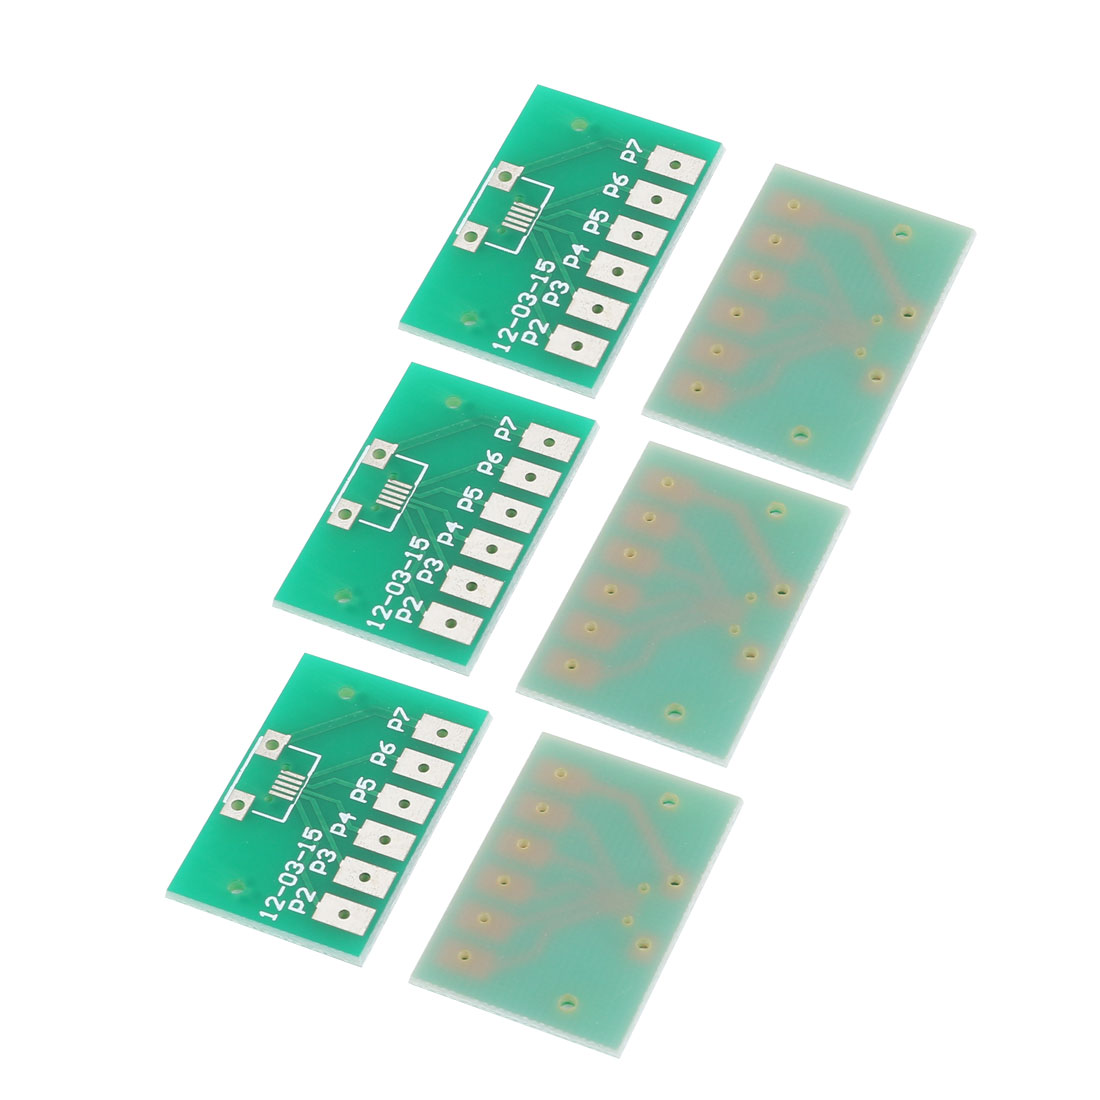 6Pcs Micro USB Mike 5P Printed Circuit Adapter Plate PCB Board 20mmx30mm Green